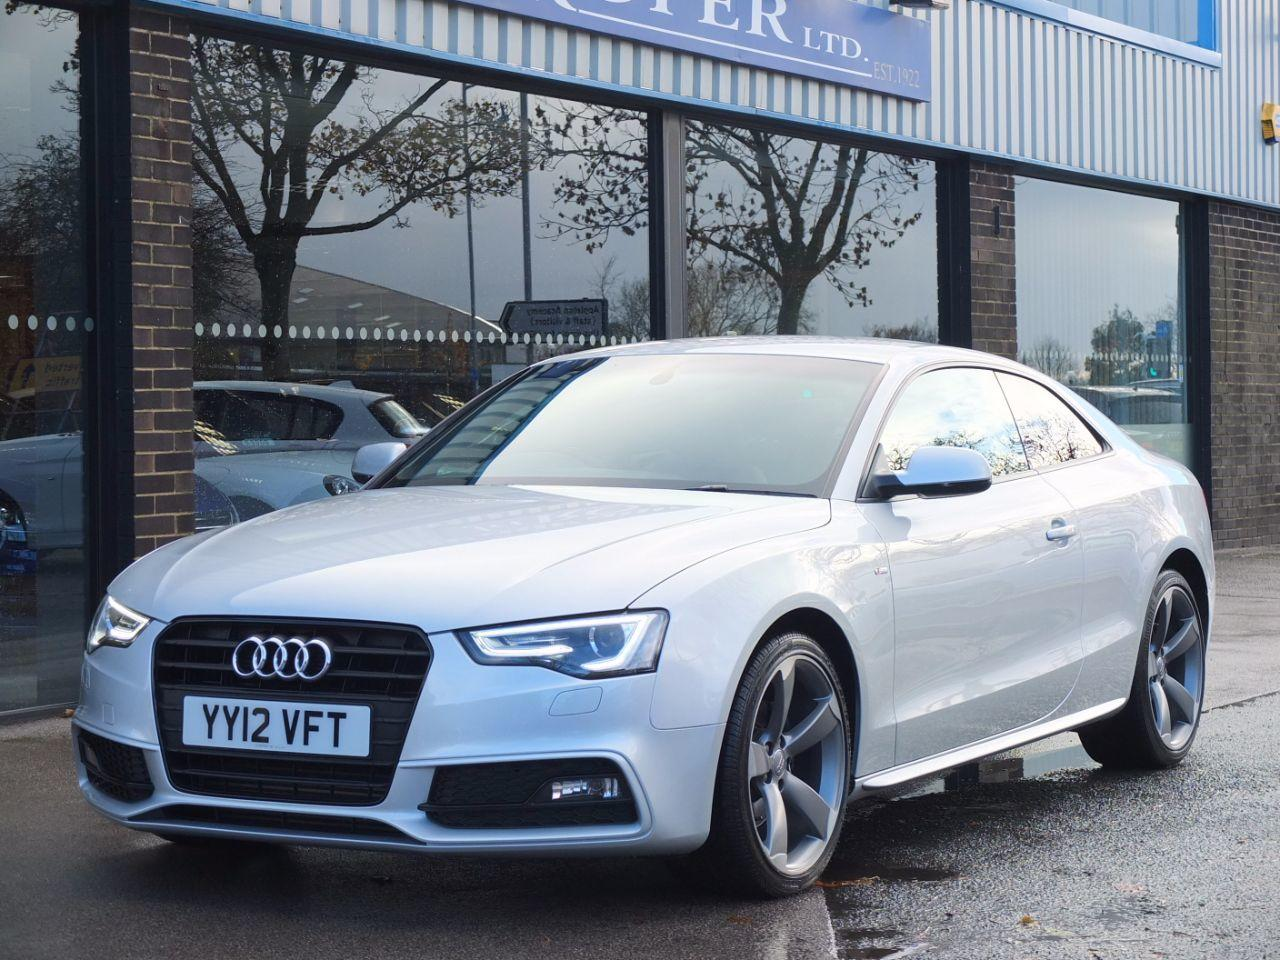 Audi A5 Coupe 2.0 TDI 177 Black Edition Coupe Diesel Ice Silver MetallicAudi A5 Coupe 2.0 TDI 177 Black Edition Coupe Diesel Ice Silver Metallic at fa Roper Ltd Bradford